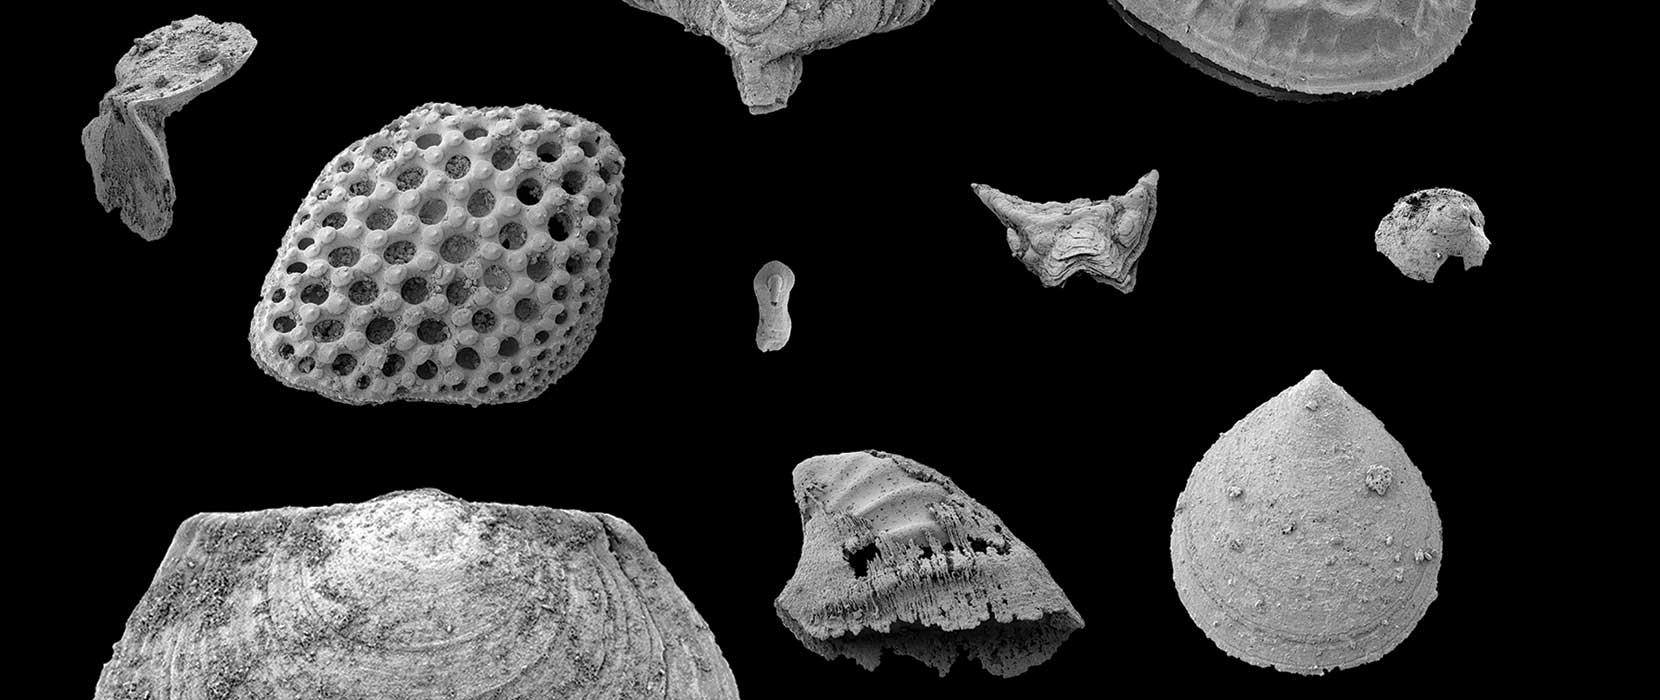 Black and white image of large and small fossil types.